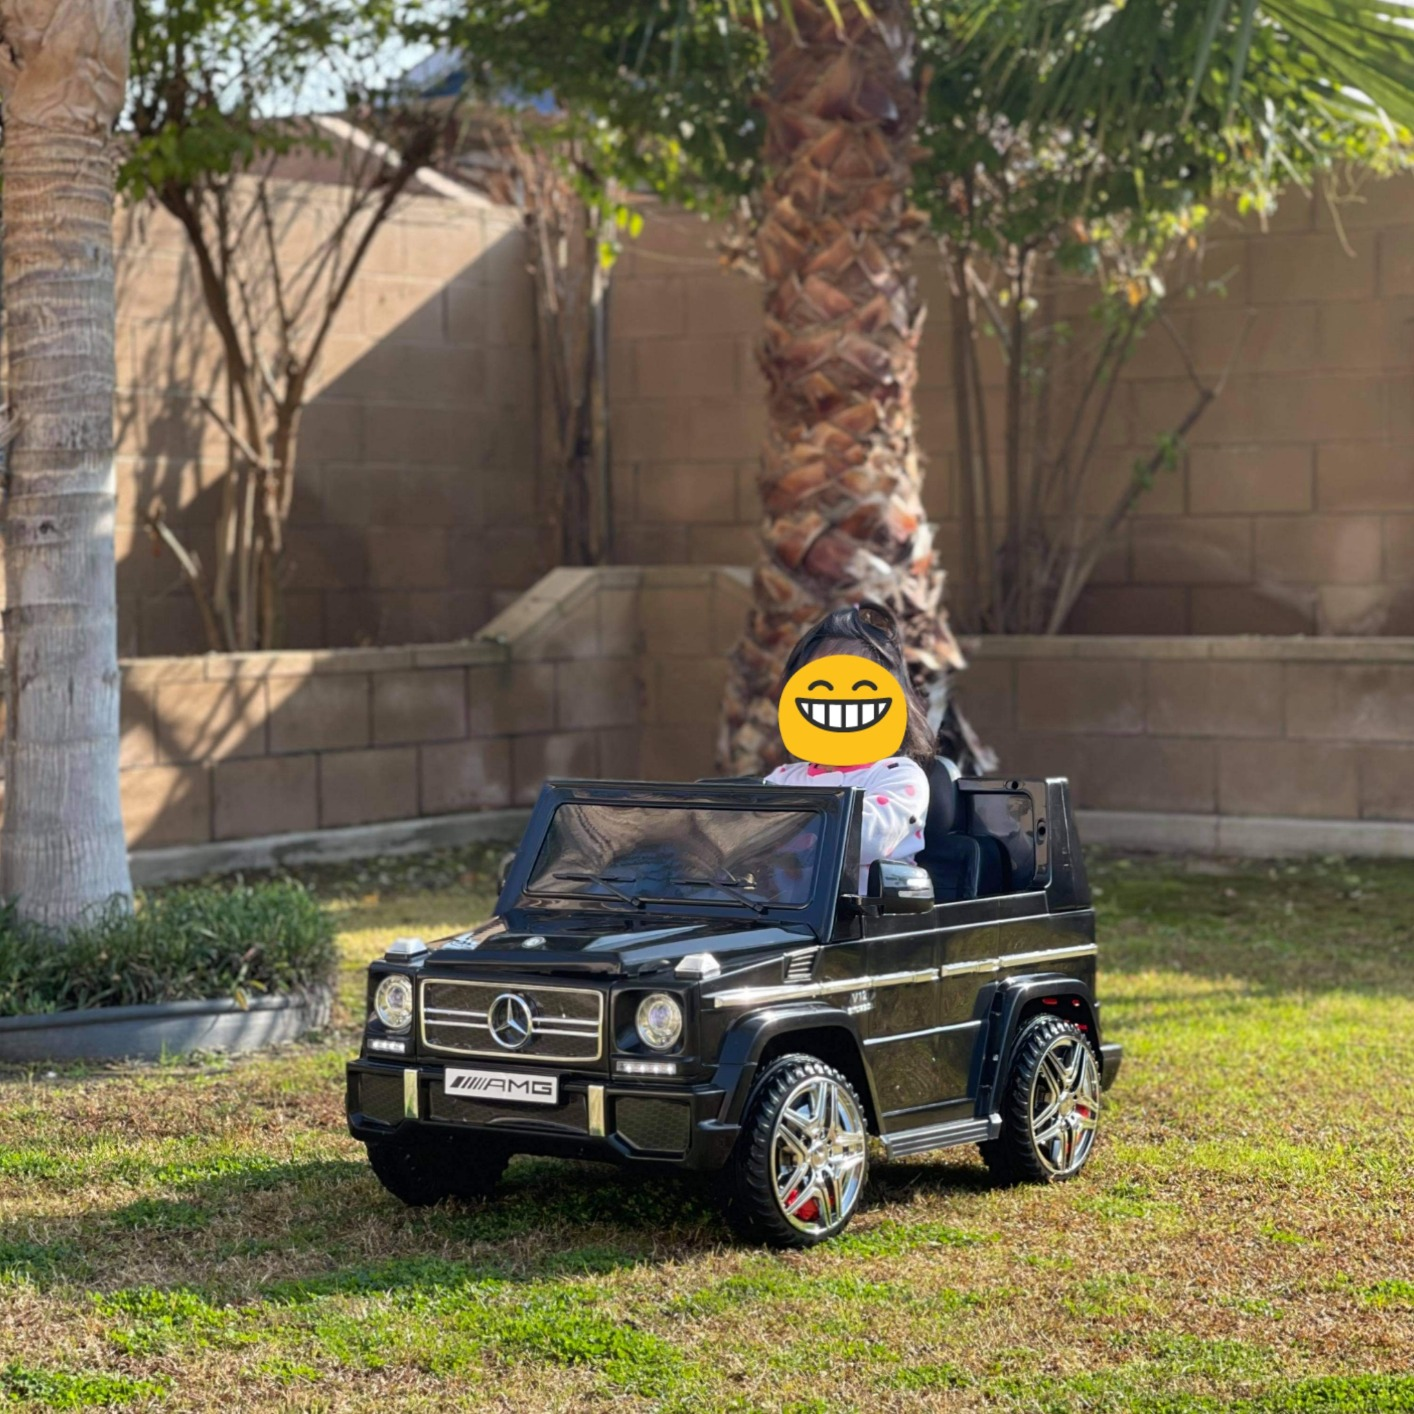 12V Benz AMG G63 Electric Ride On Car for Kids with Remote Control, Black photo review